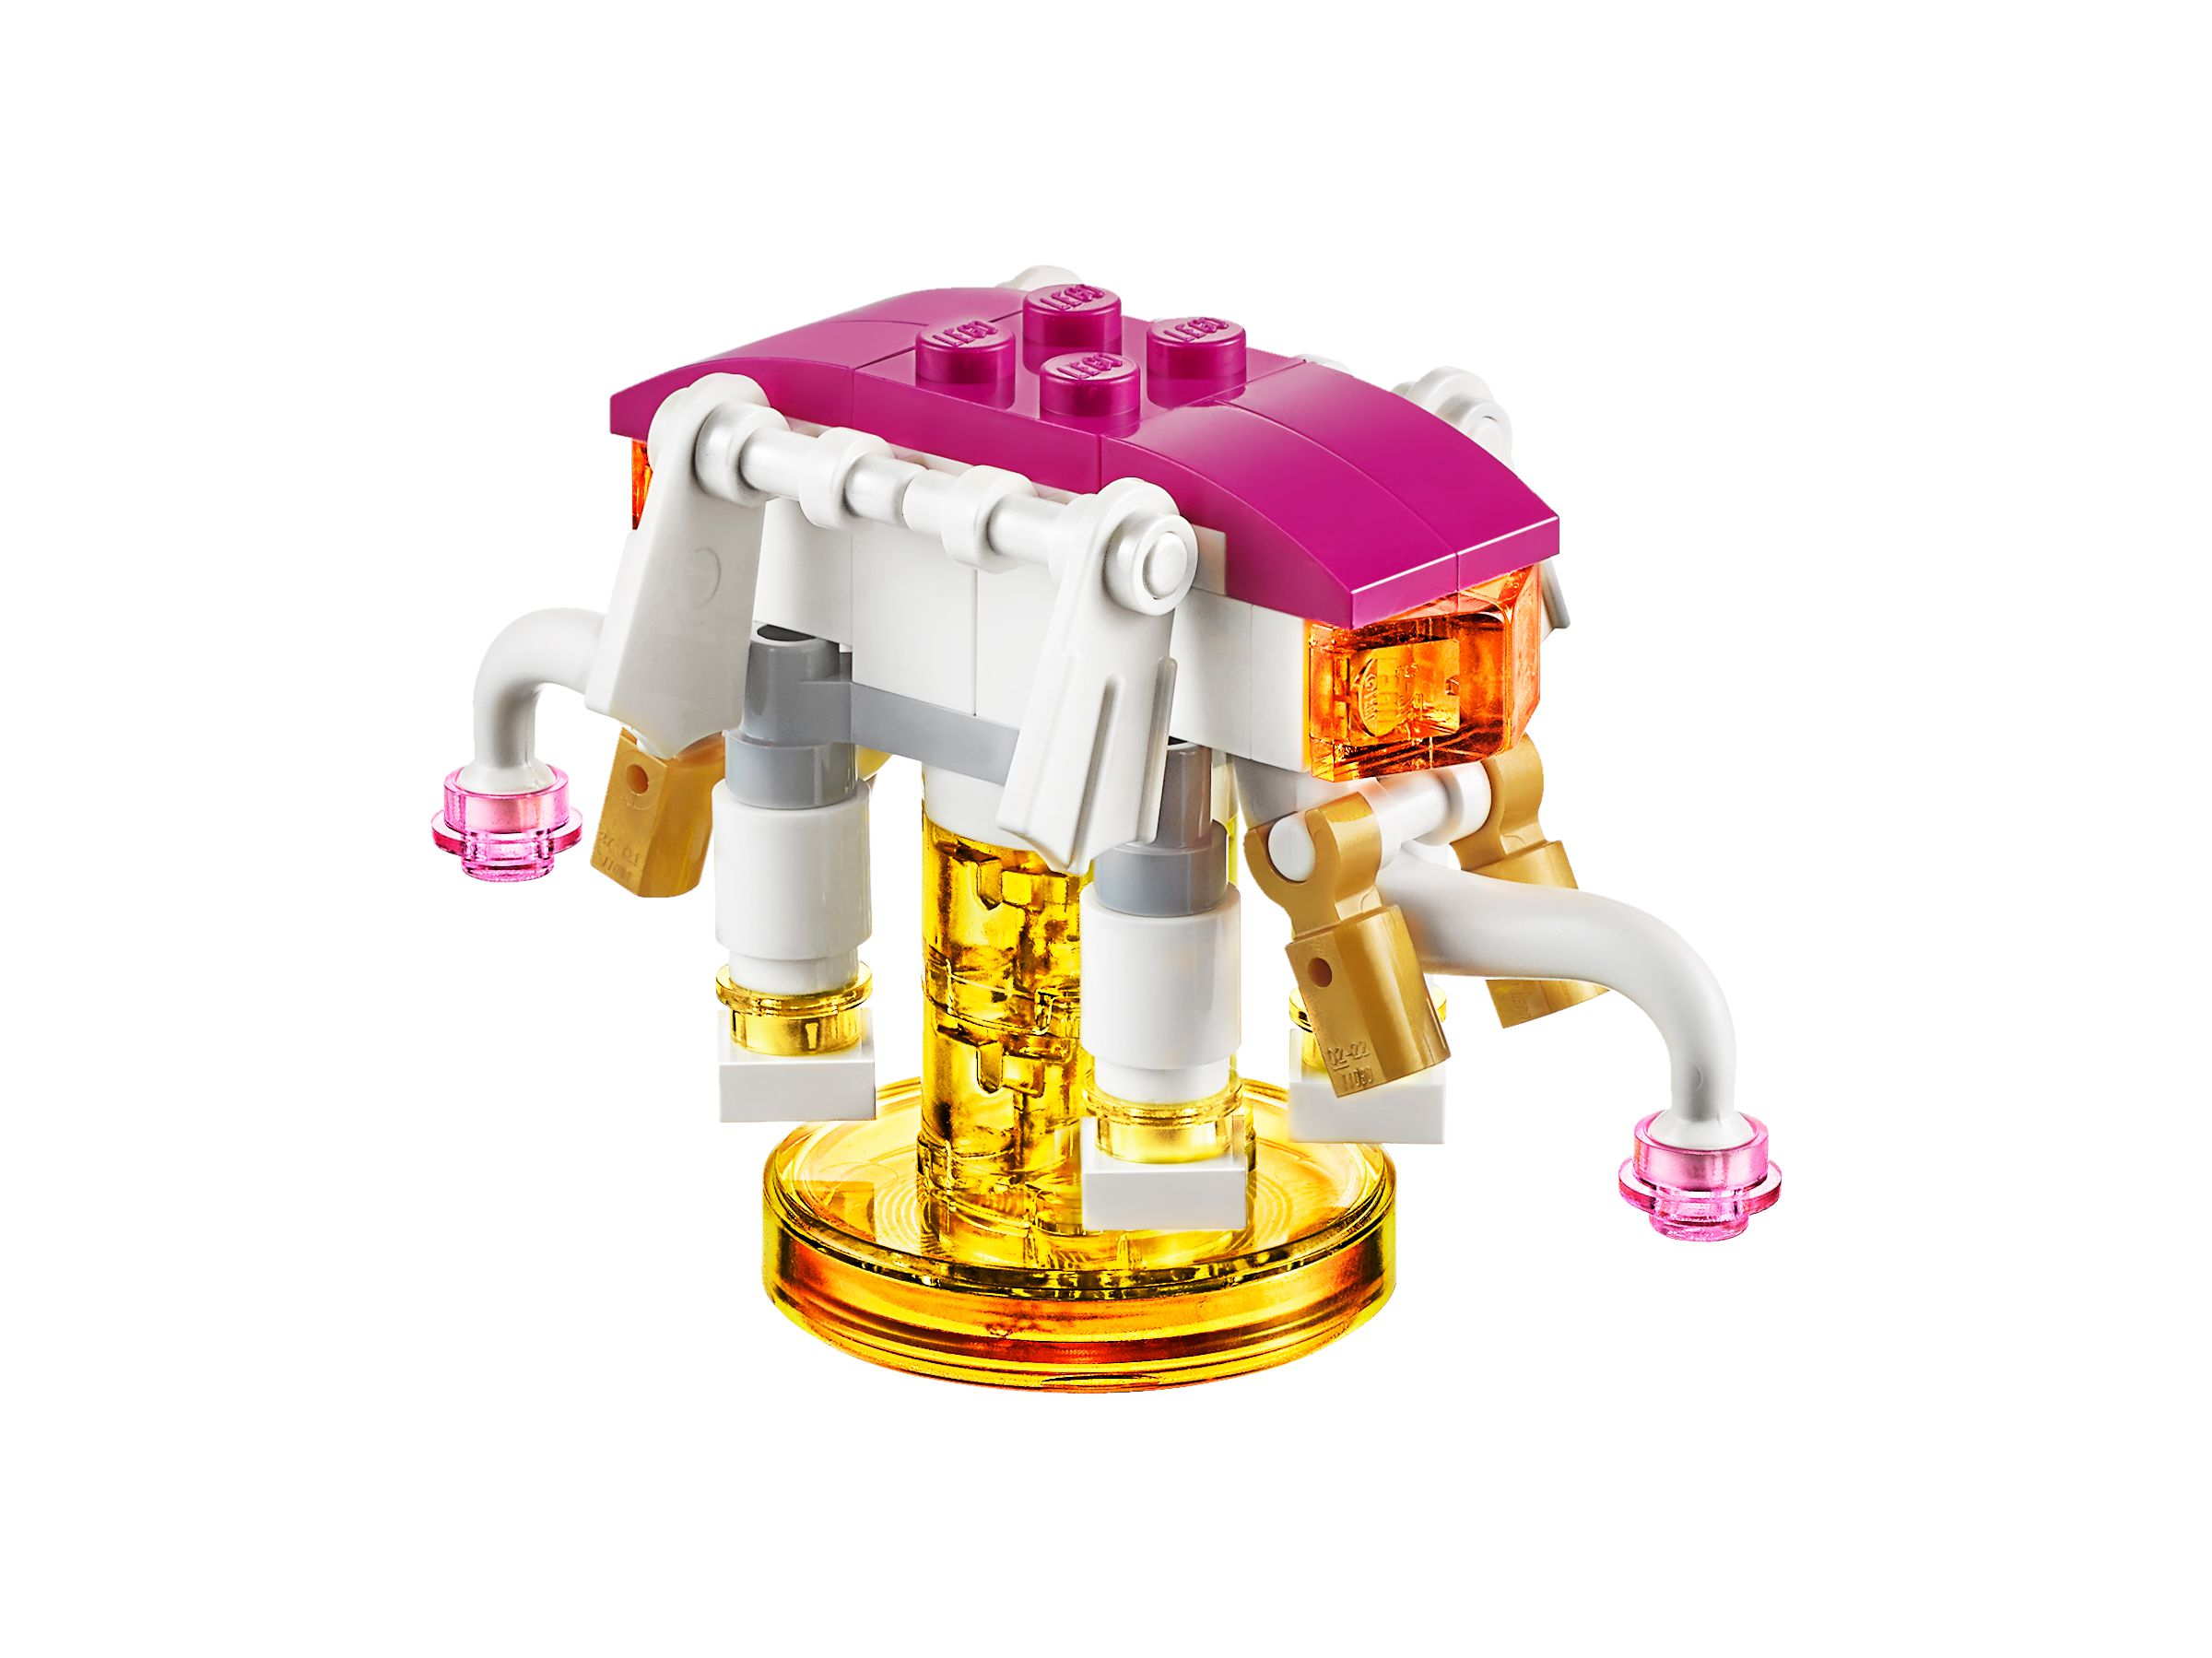 LEGO Dimensions 71245 Level Pack Adventure Time LEGO_71245_alt2.jpg